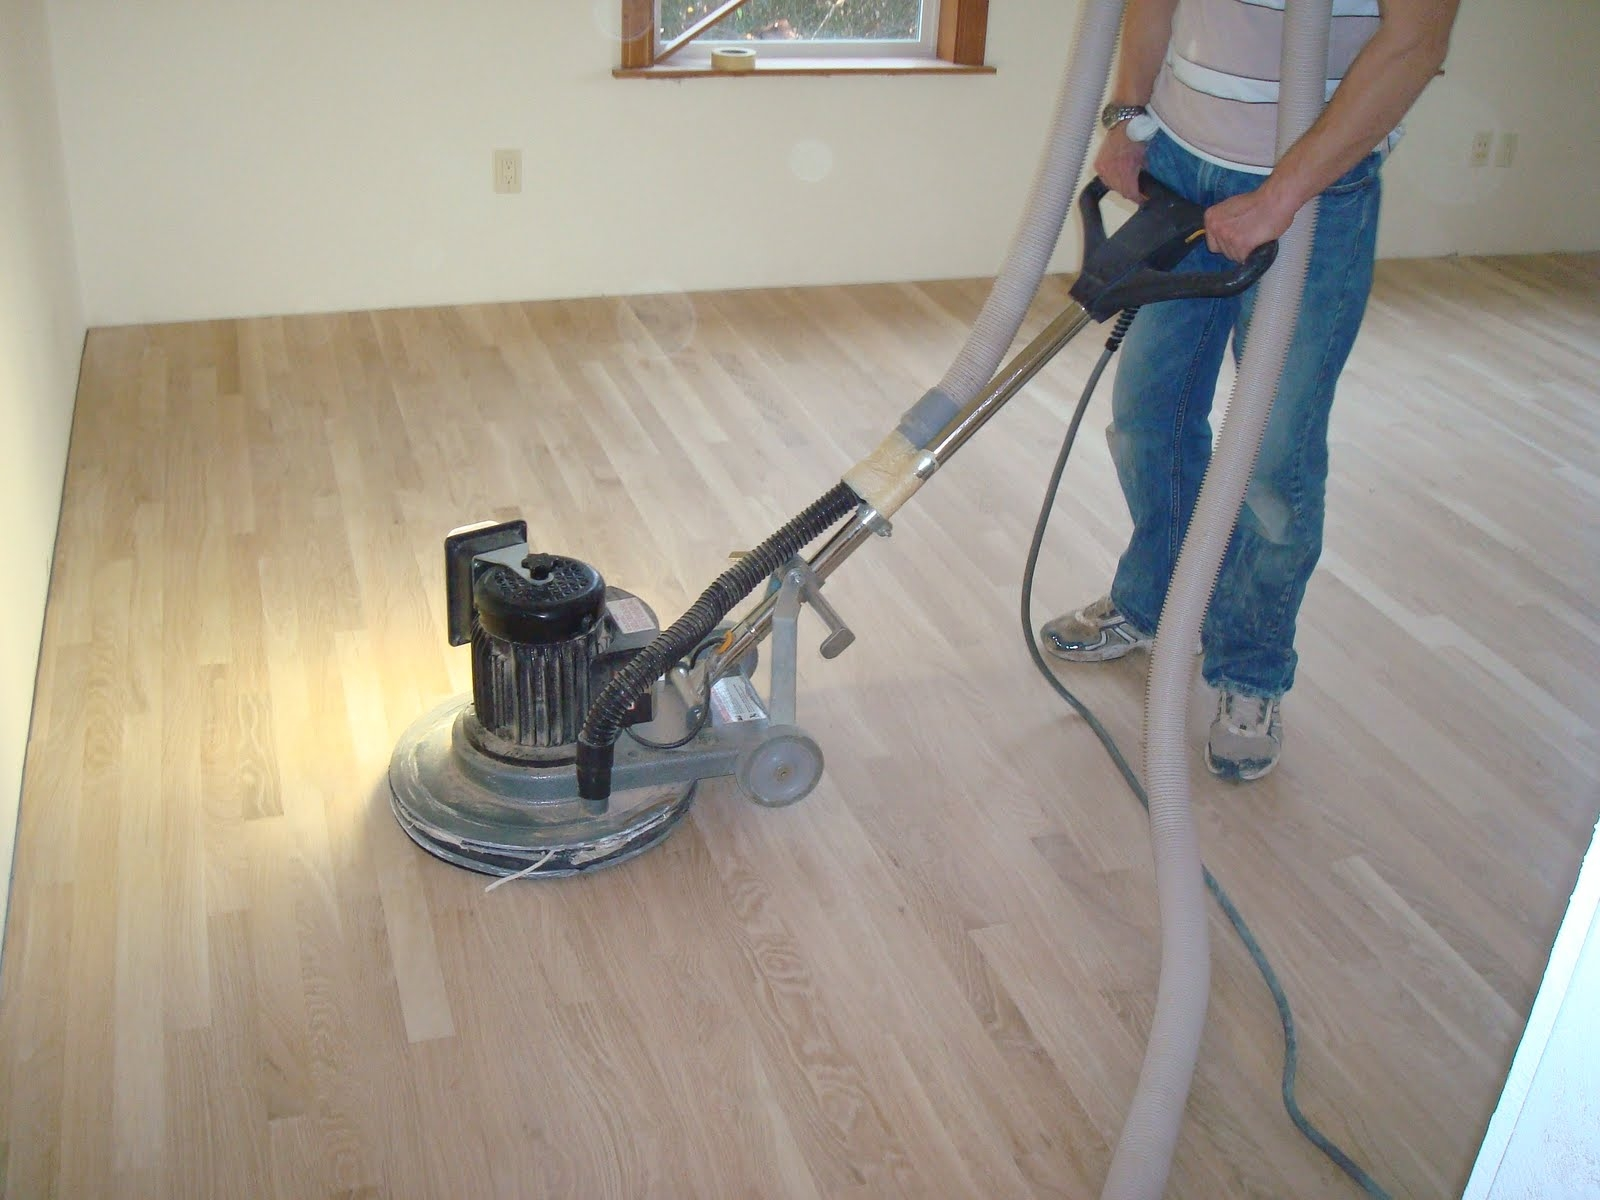 Permalink to Electric Buffer For Wood Floors